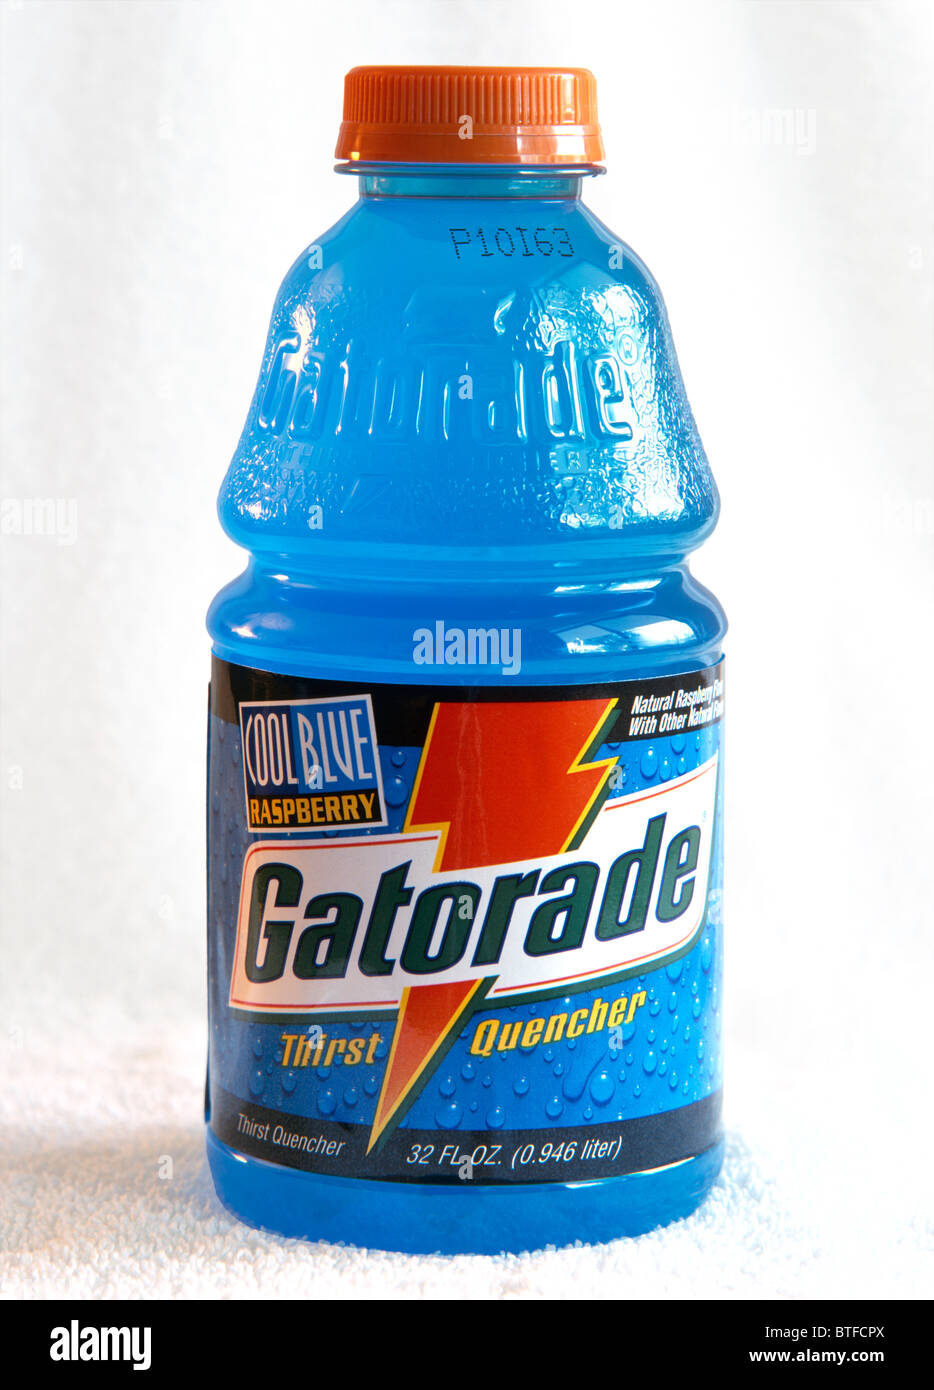 Gatorade Label : gatorade, label, Bottle, Gatorade, Style, Label, Branding,, Stock, Photo, Alamy